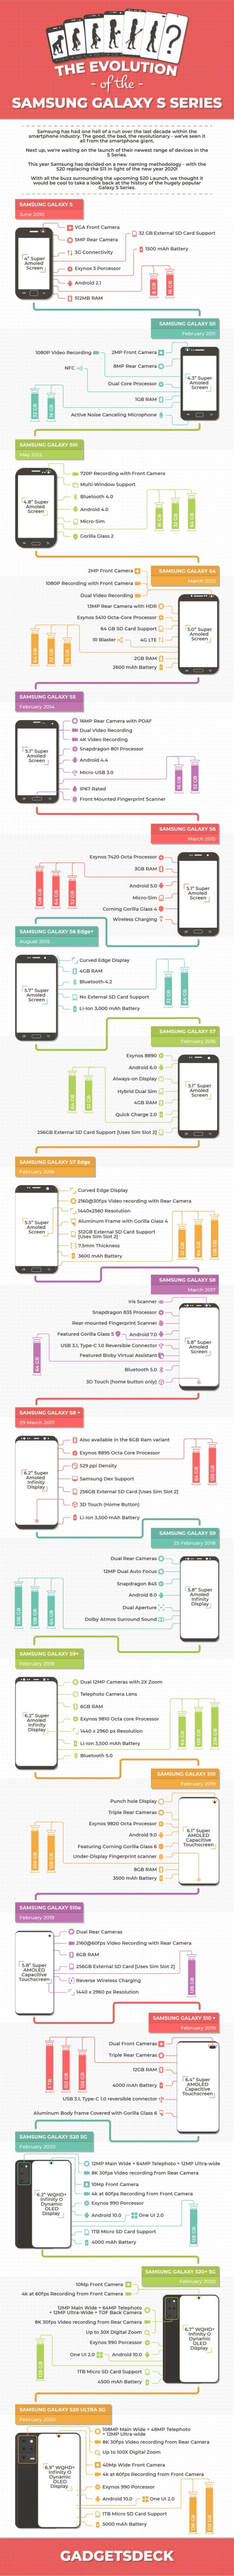 Infographic: 11 generations of Galaxy S flagships